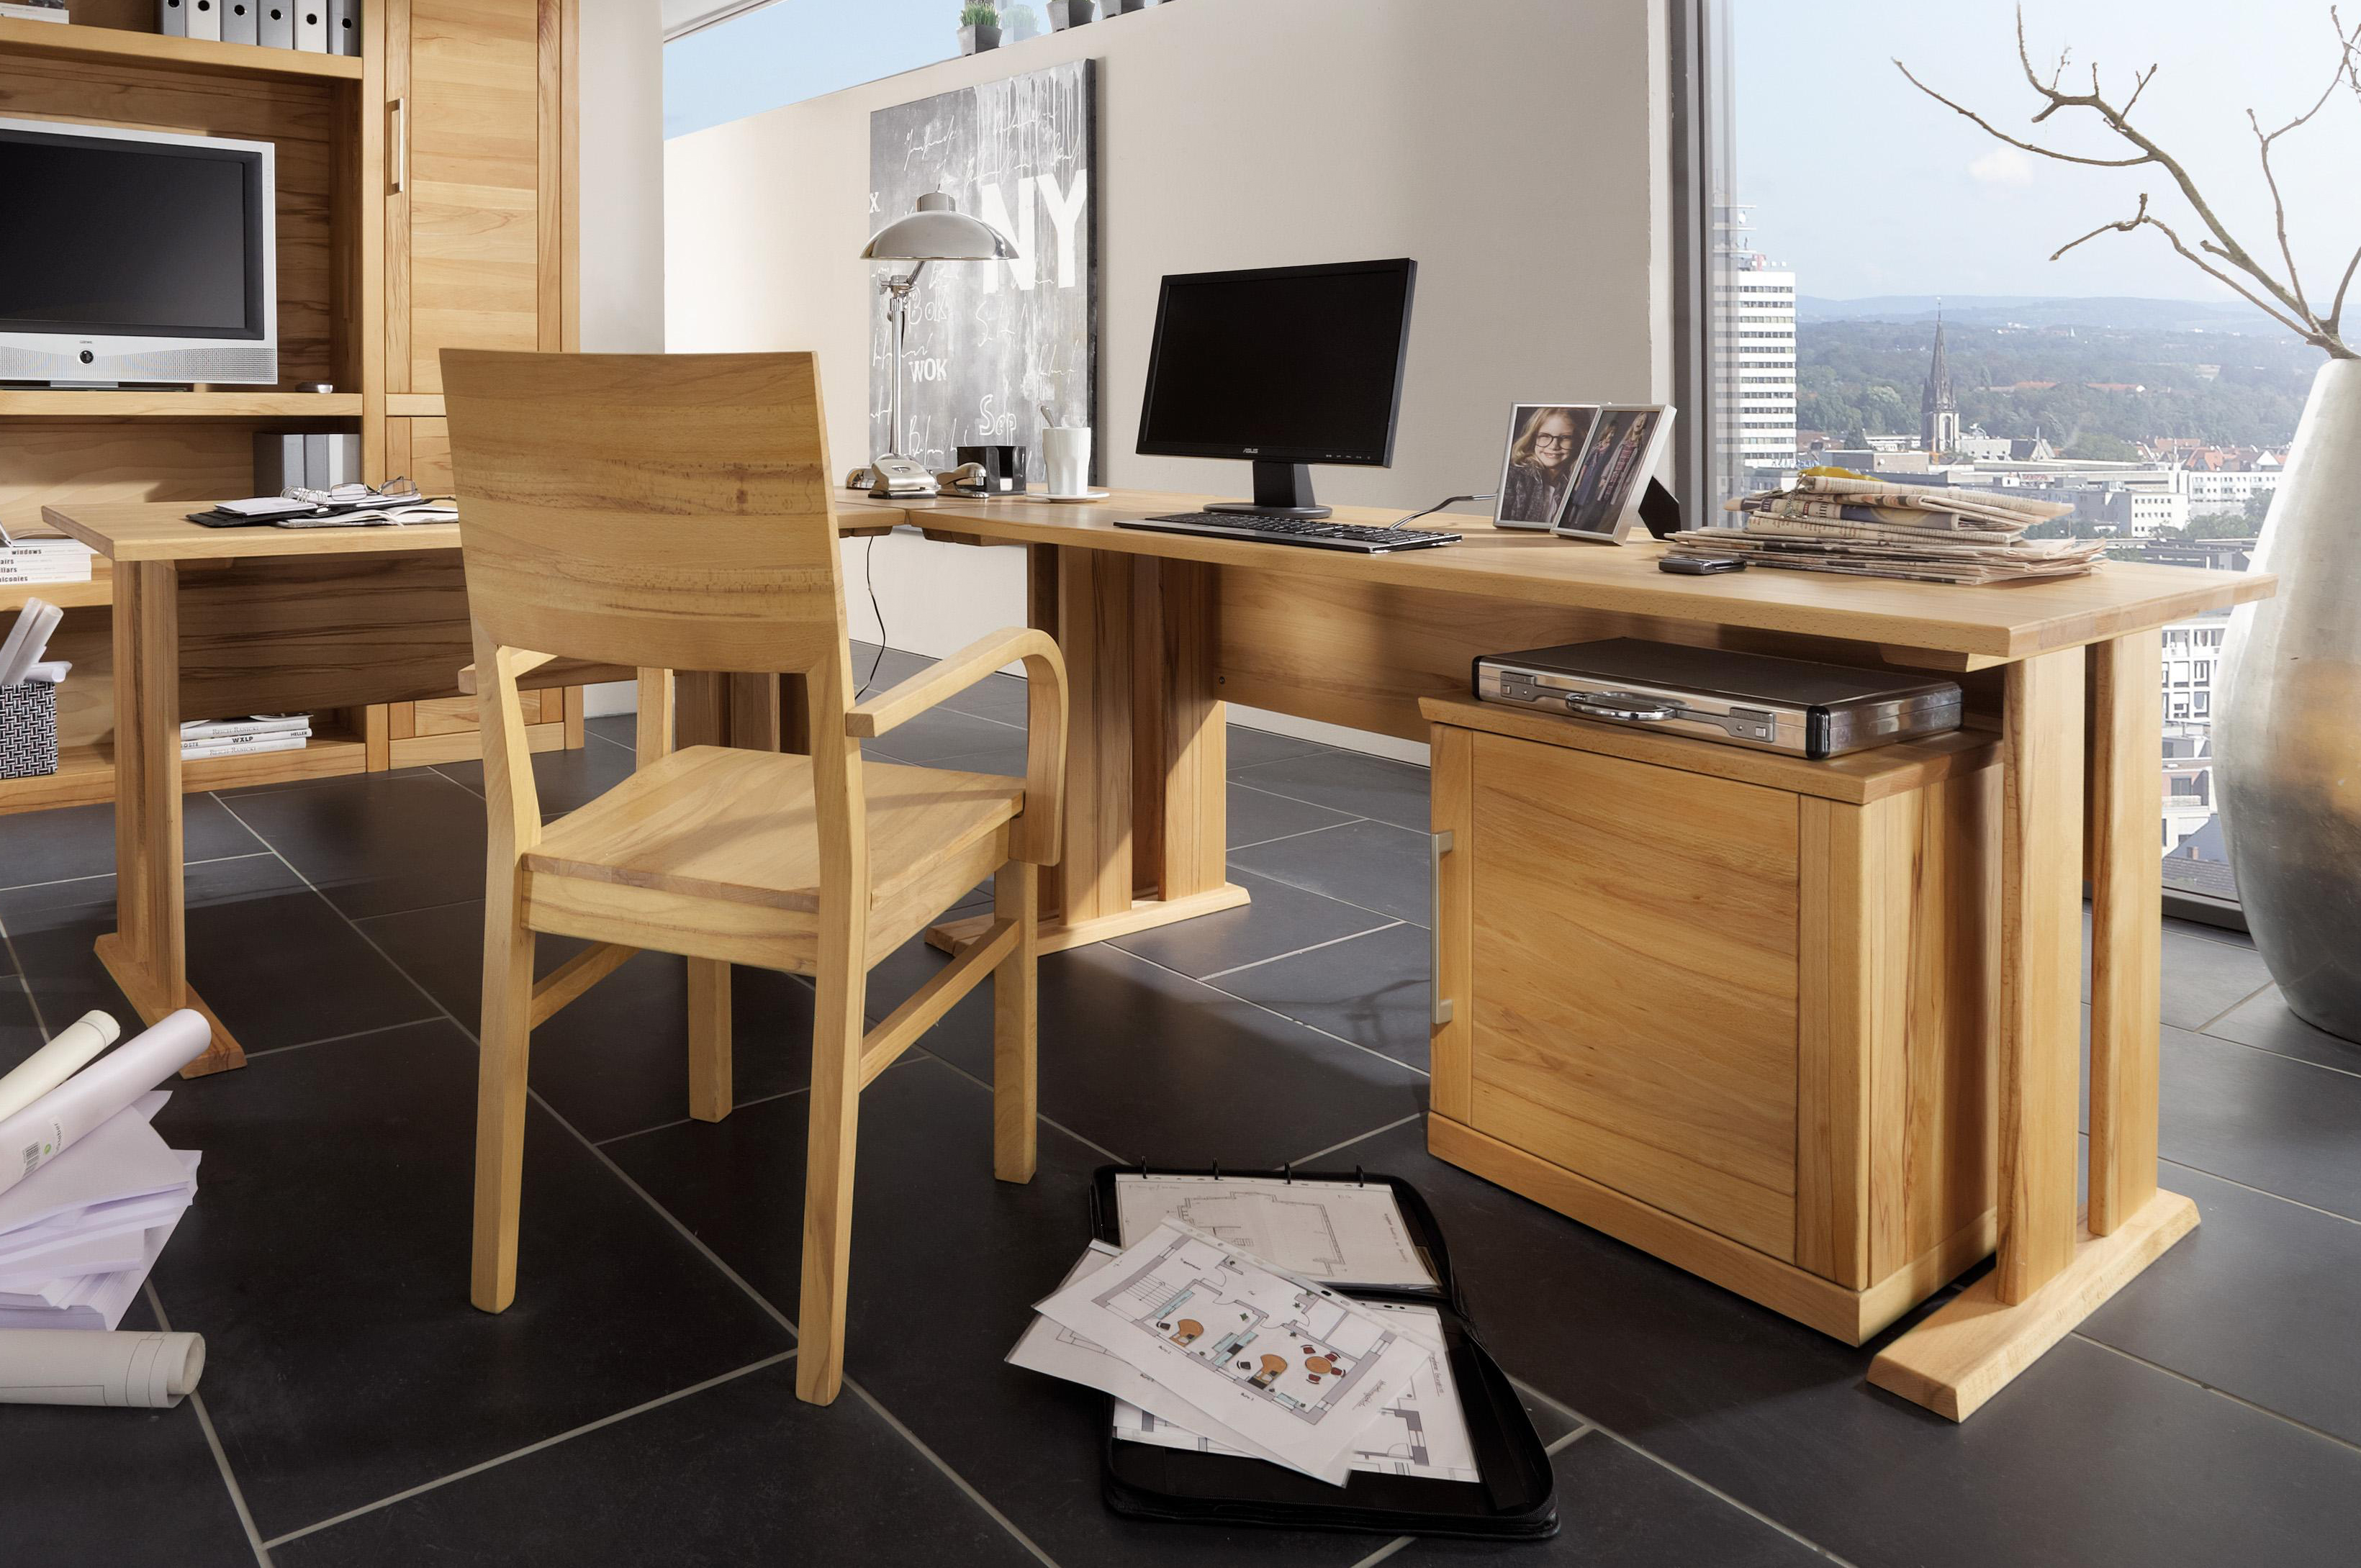 schreibtisch eckschreibtisch holz kernbuche massiv ge lt winkel computertisch ebay. Black Bedroom Furniture Sets. Home Design Ideas